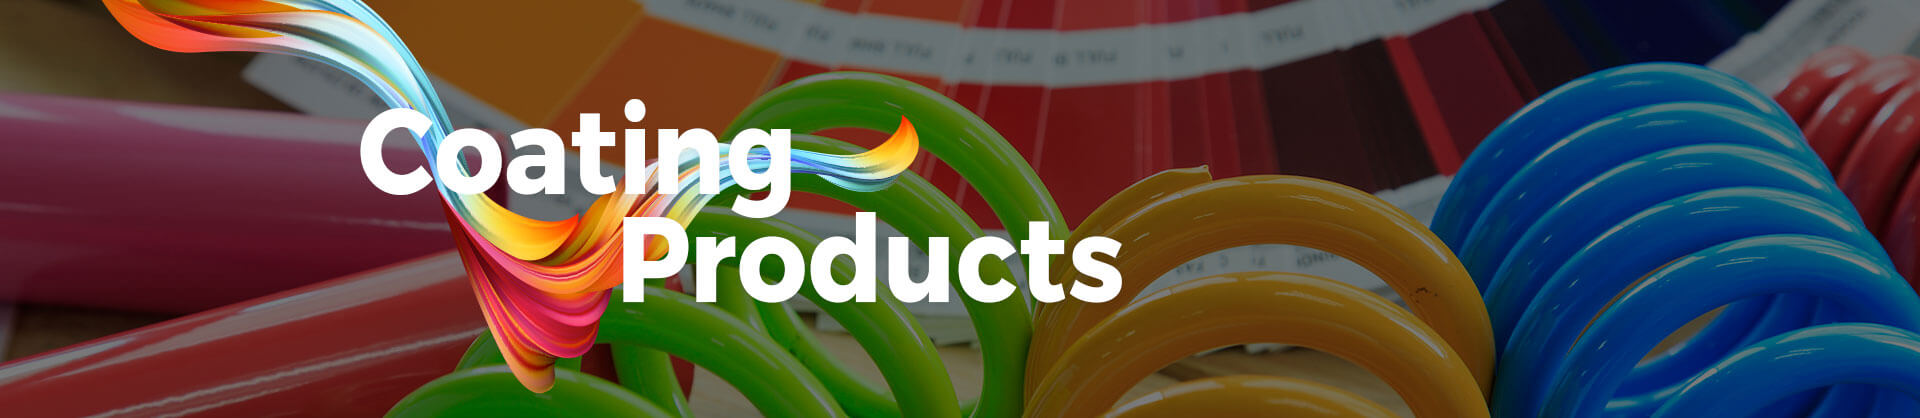 wide range of Industrial paints and Coatings products manufacturers | British Paints